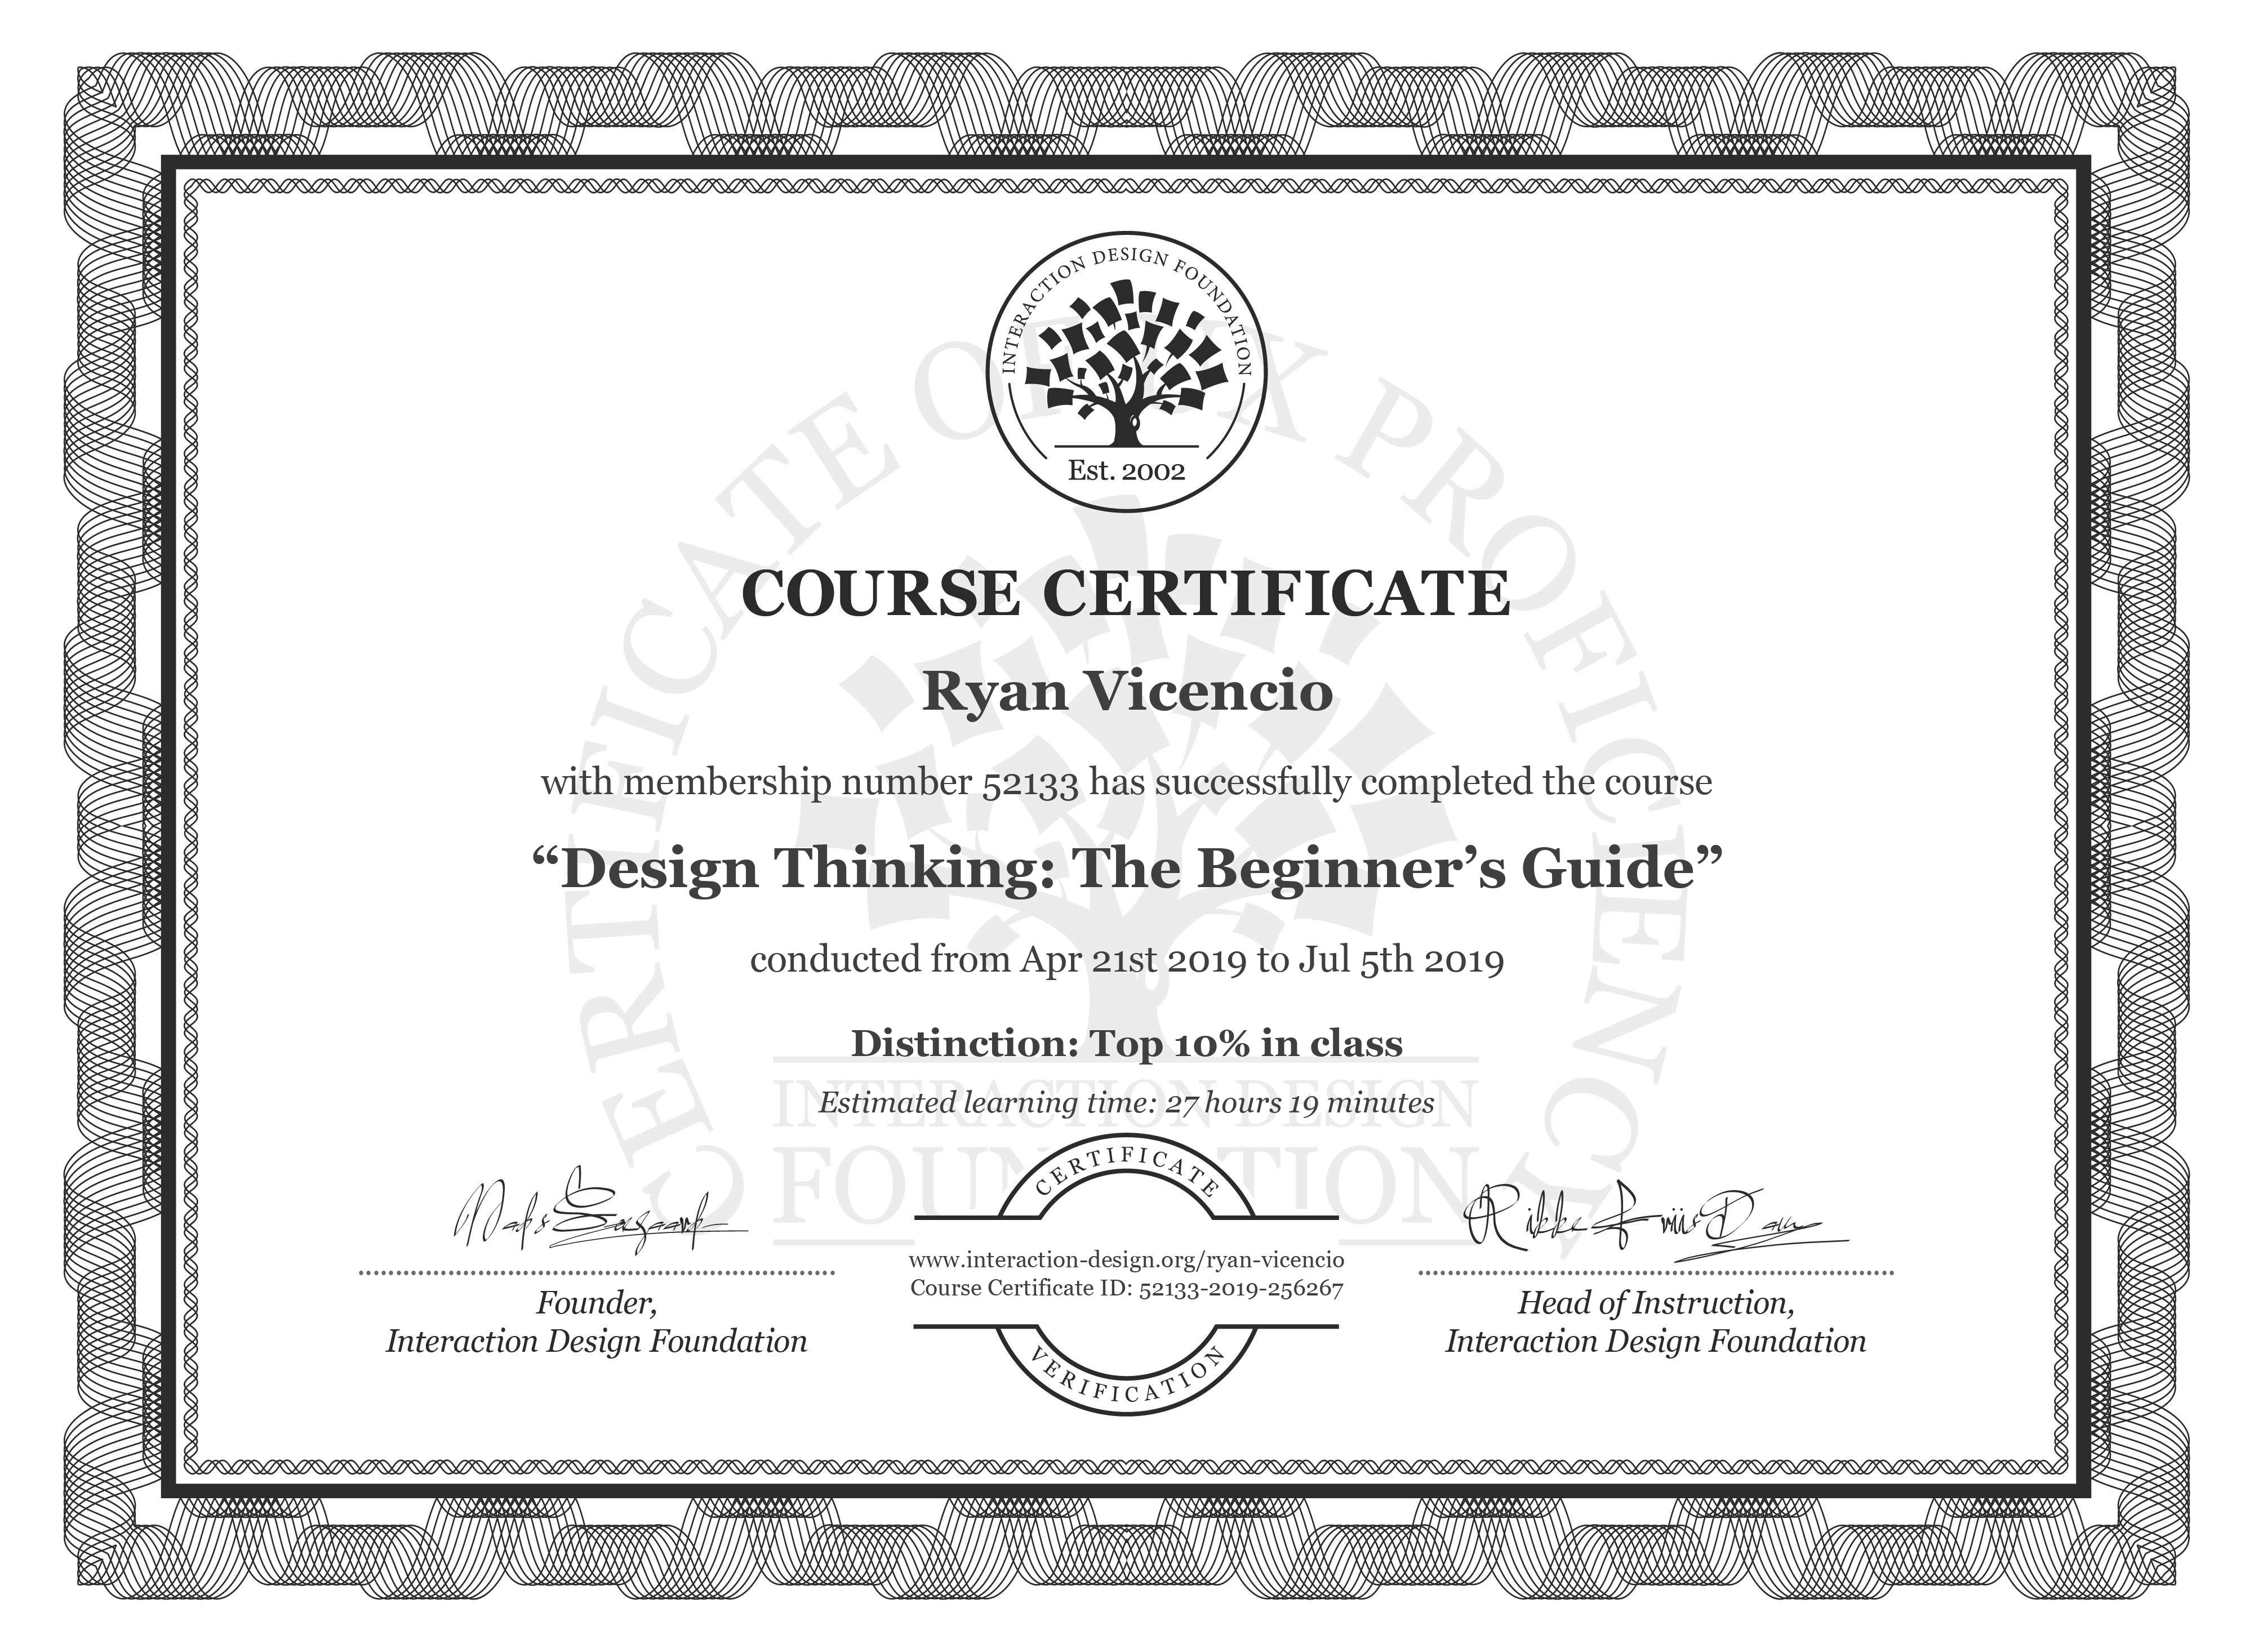 Ryan Vicencio's Course Certificate: Design Thinking: The Beginner's Guide